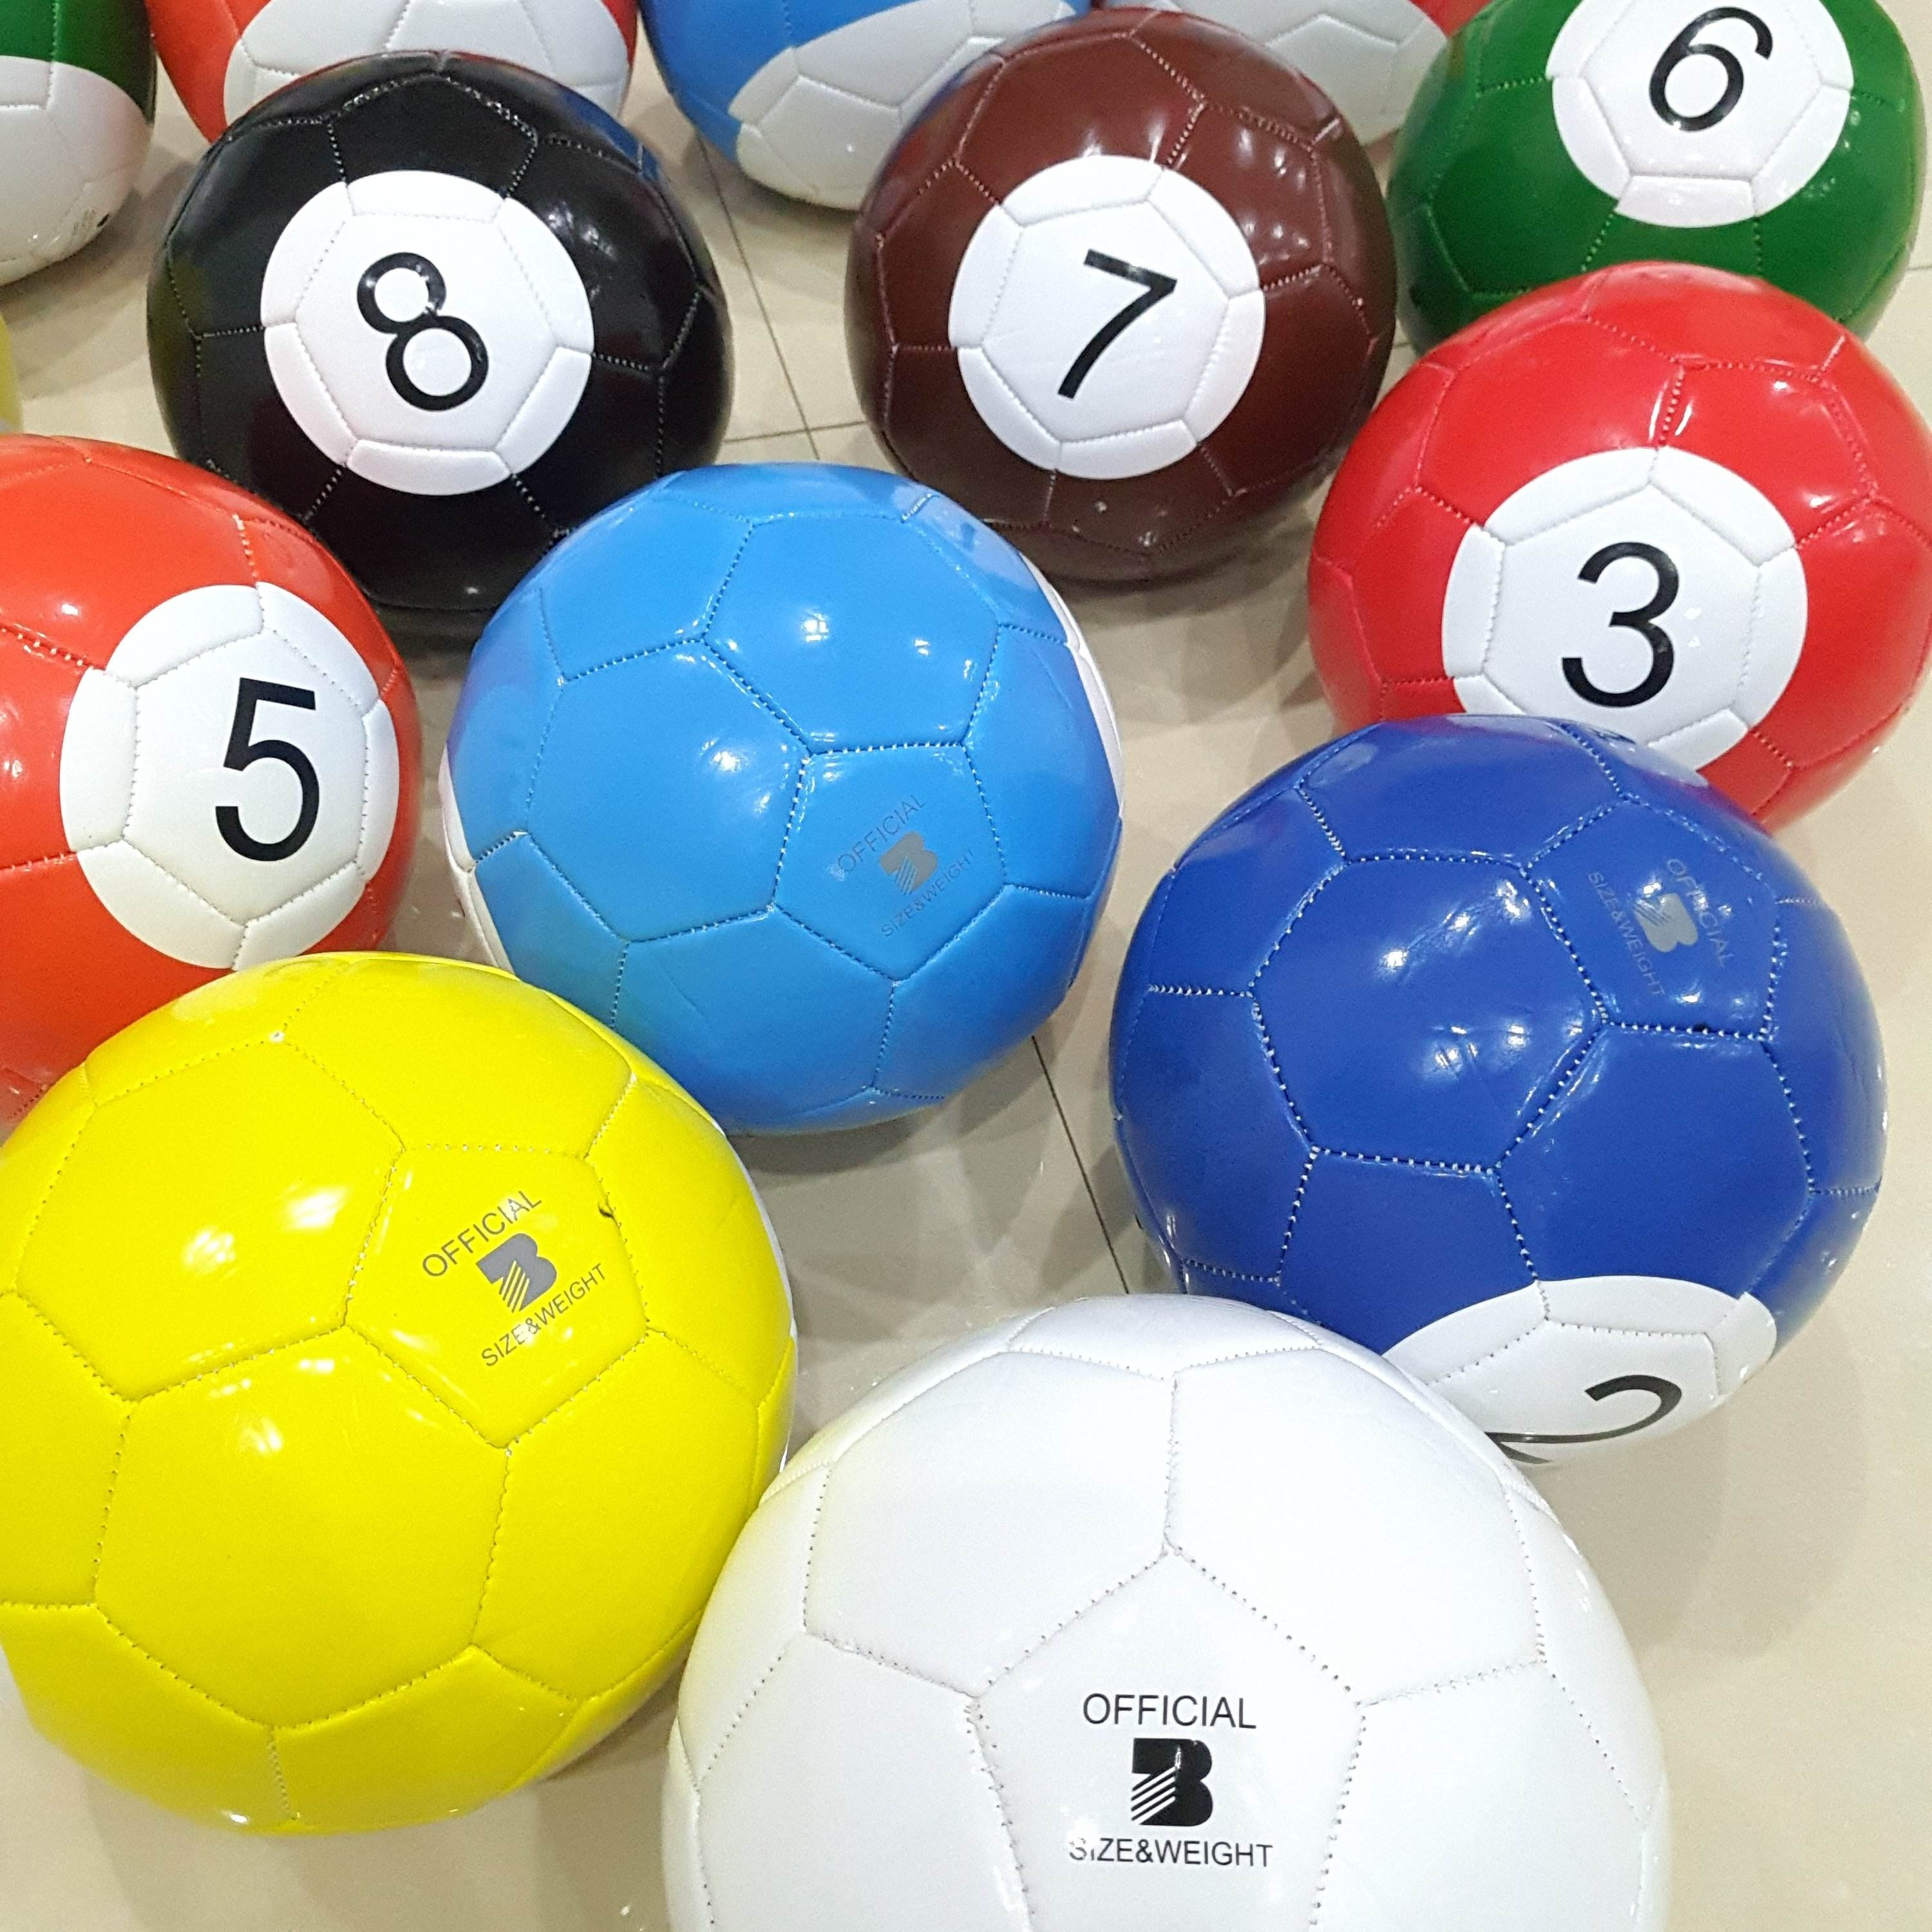 Factory Wholesale Stock 16 pcs/set Size 3 Pool Football Billiard Soccer Inflatable Snook Ball